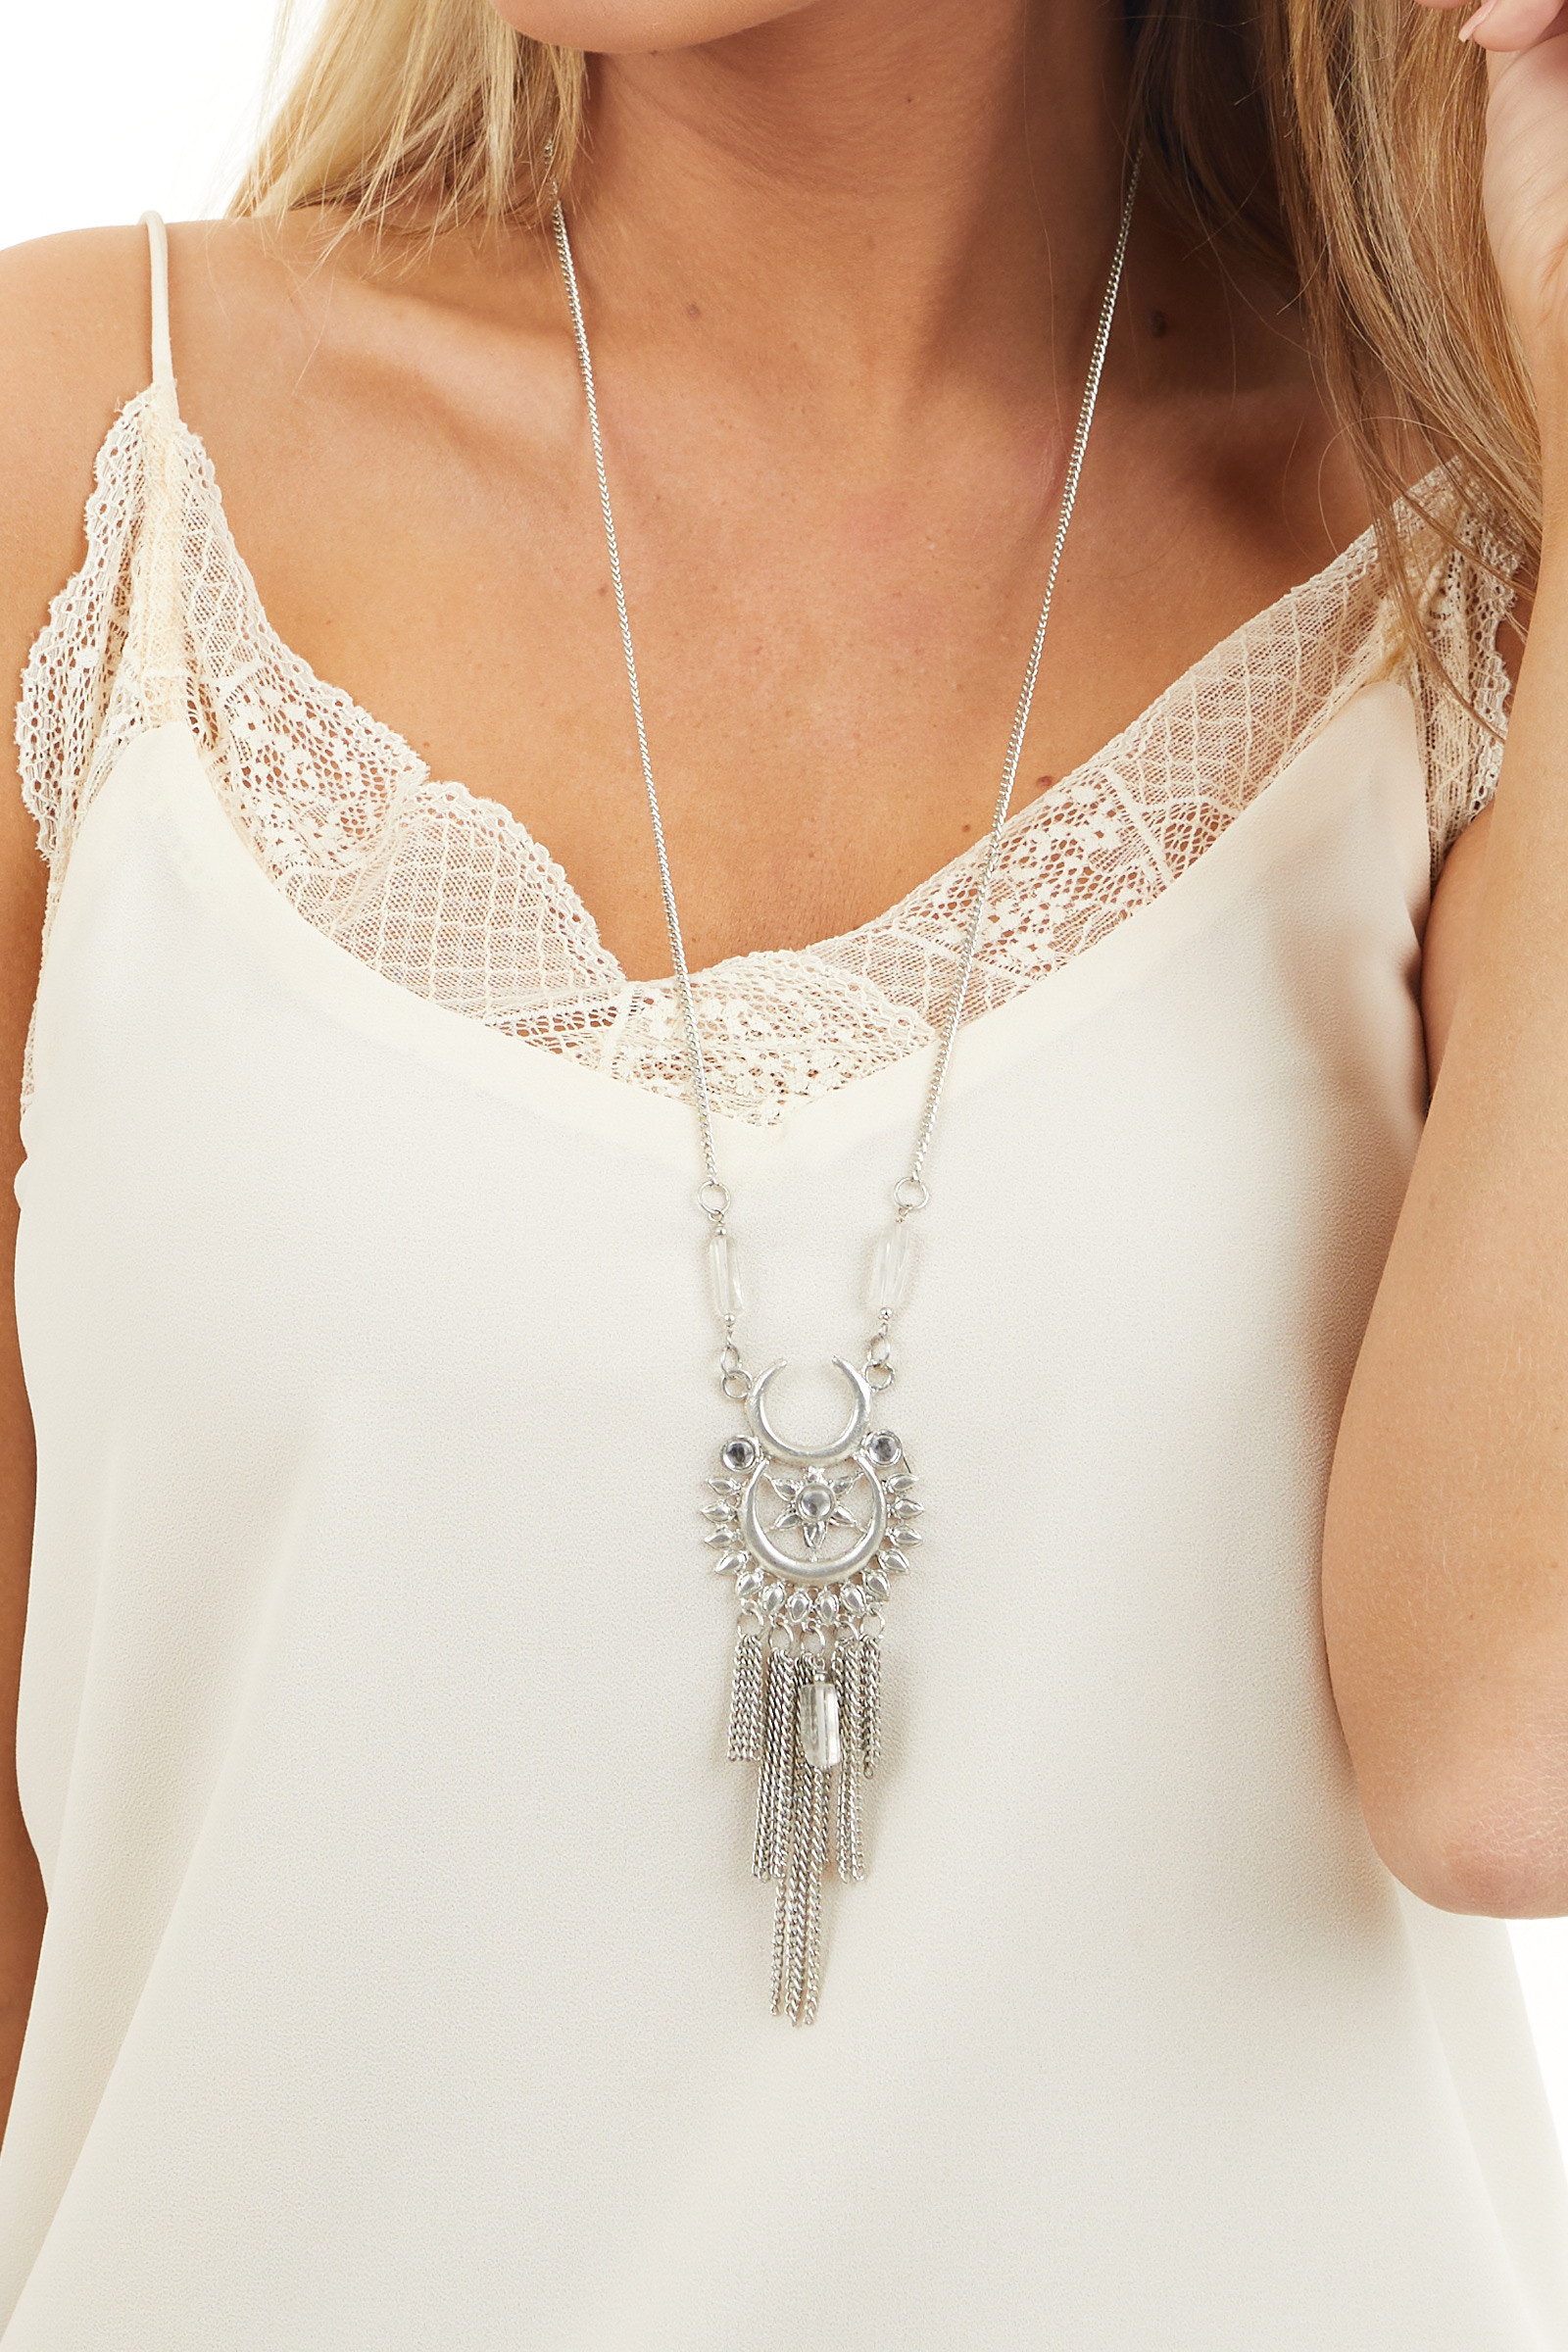 Silver Chain Necklace with Statement Pendant and Crystals